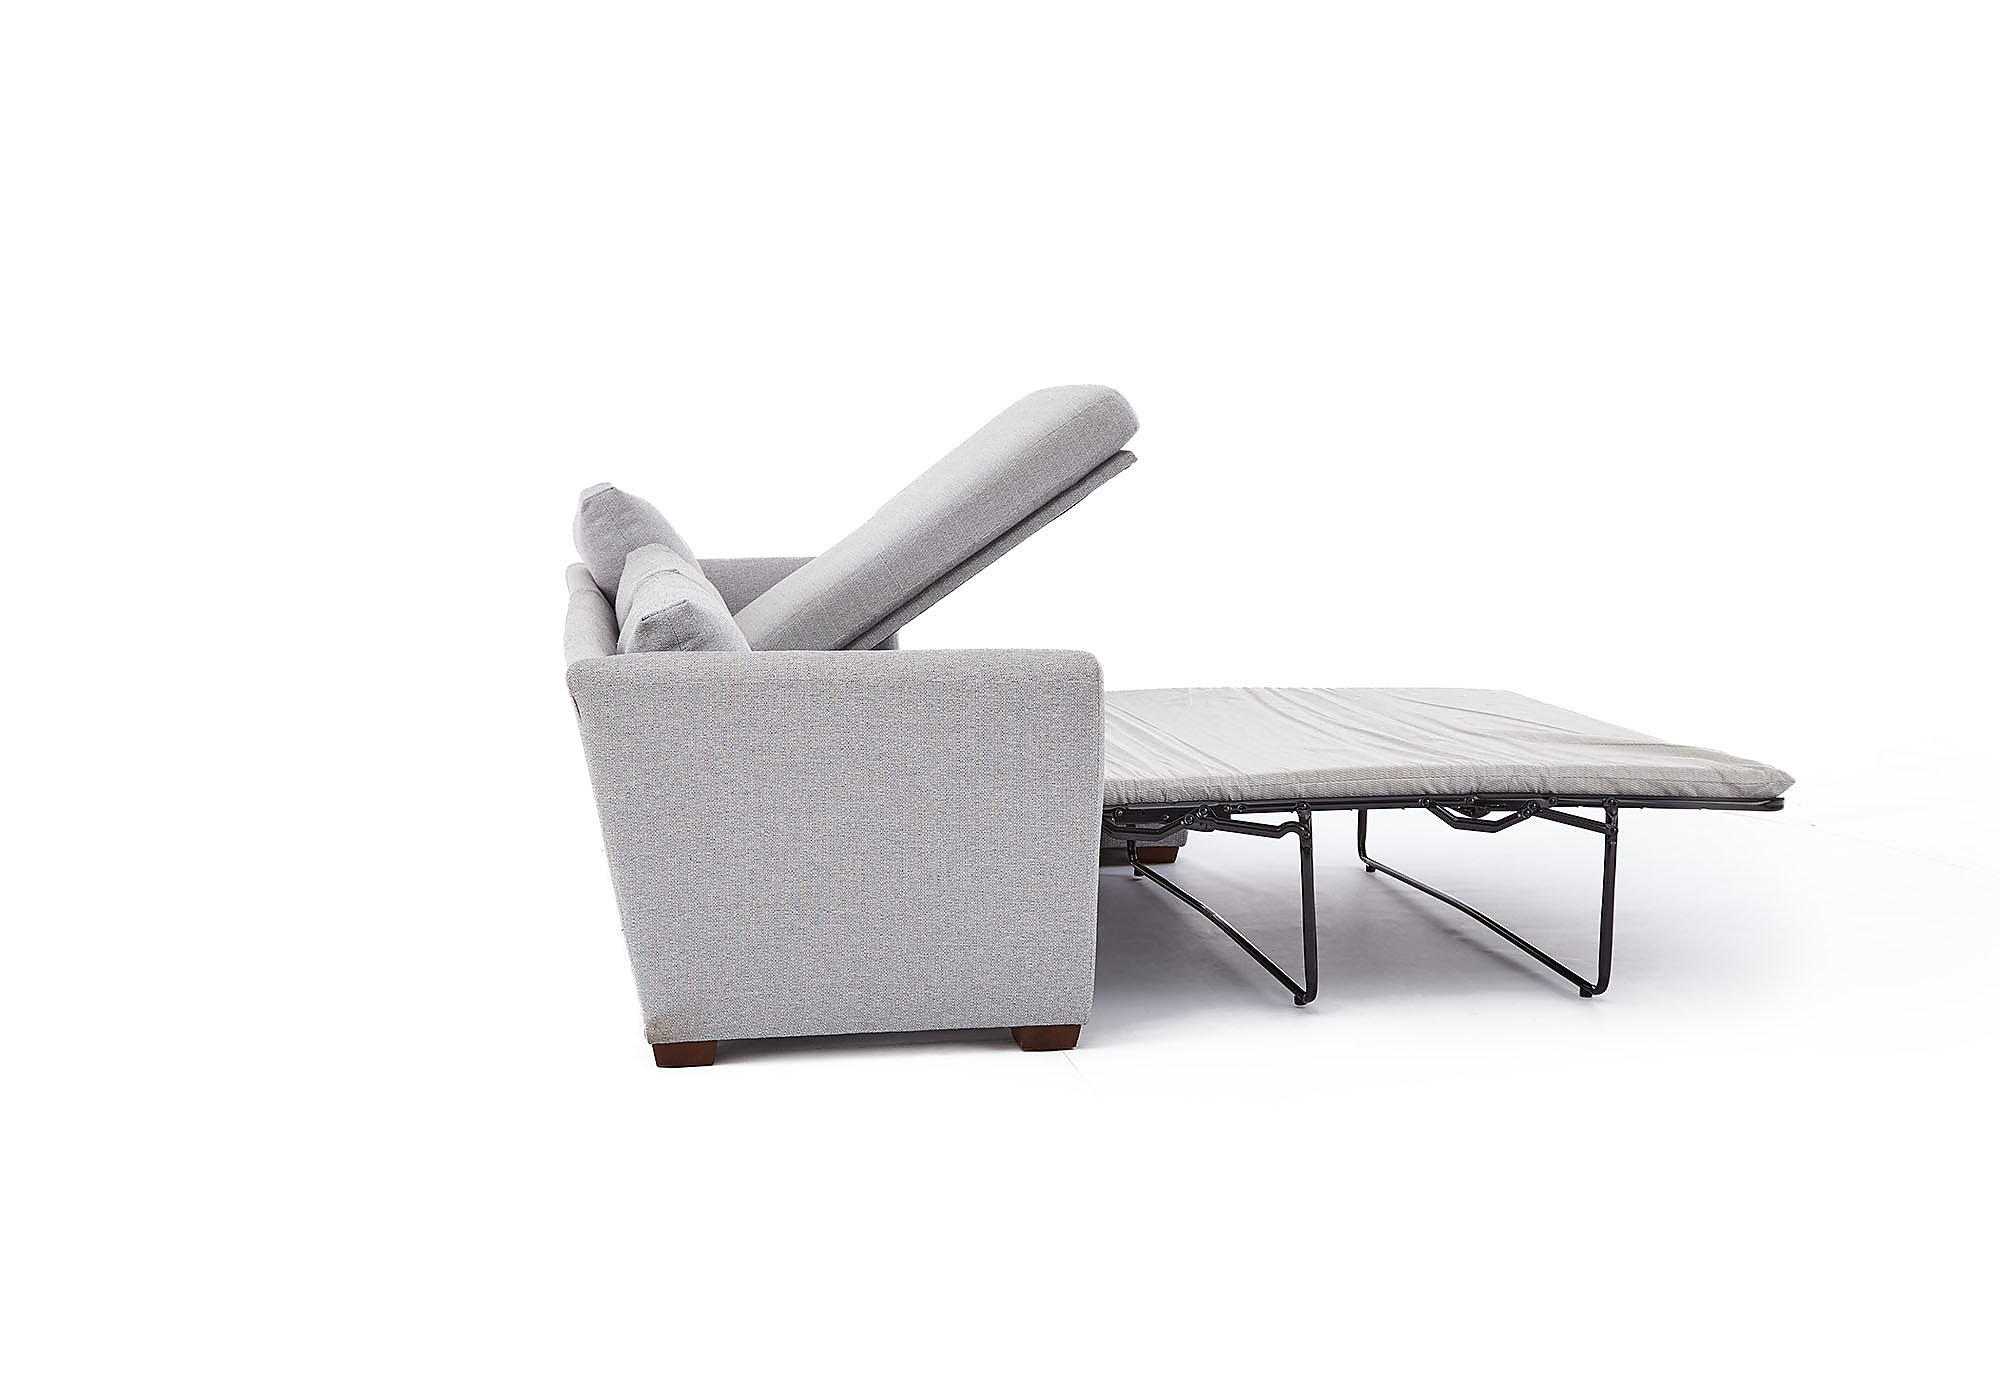 Sorrento Bedroom Furniture Sorrento 3 Seater Chaise With Sofa Bed And Storage Furniture Village